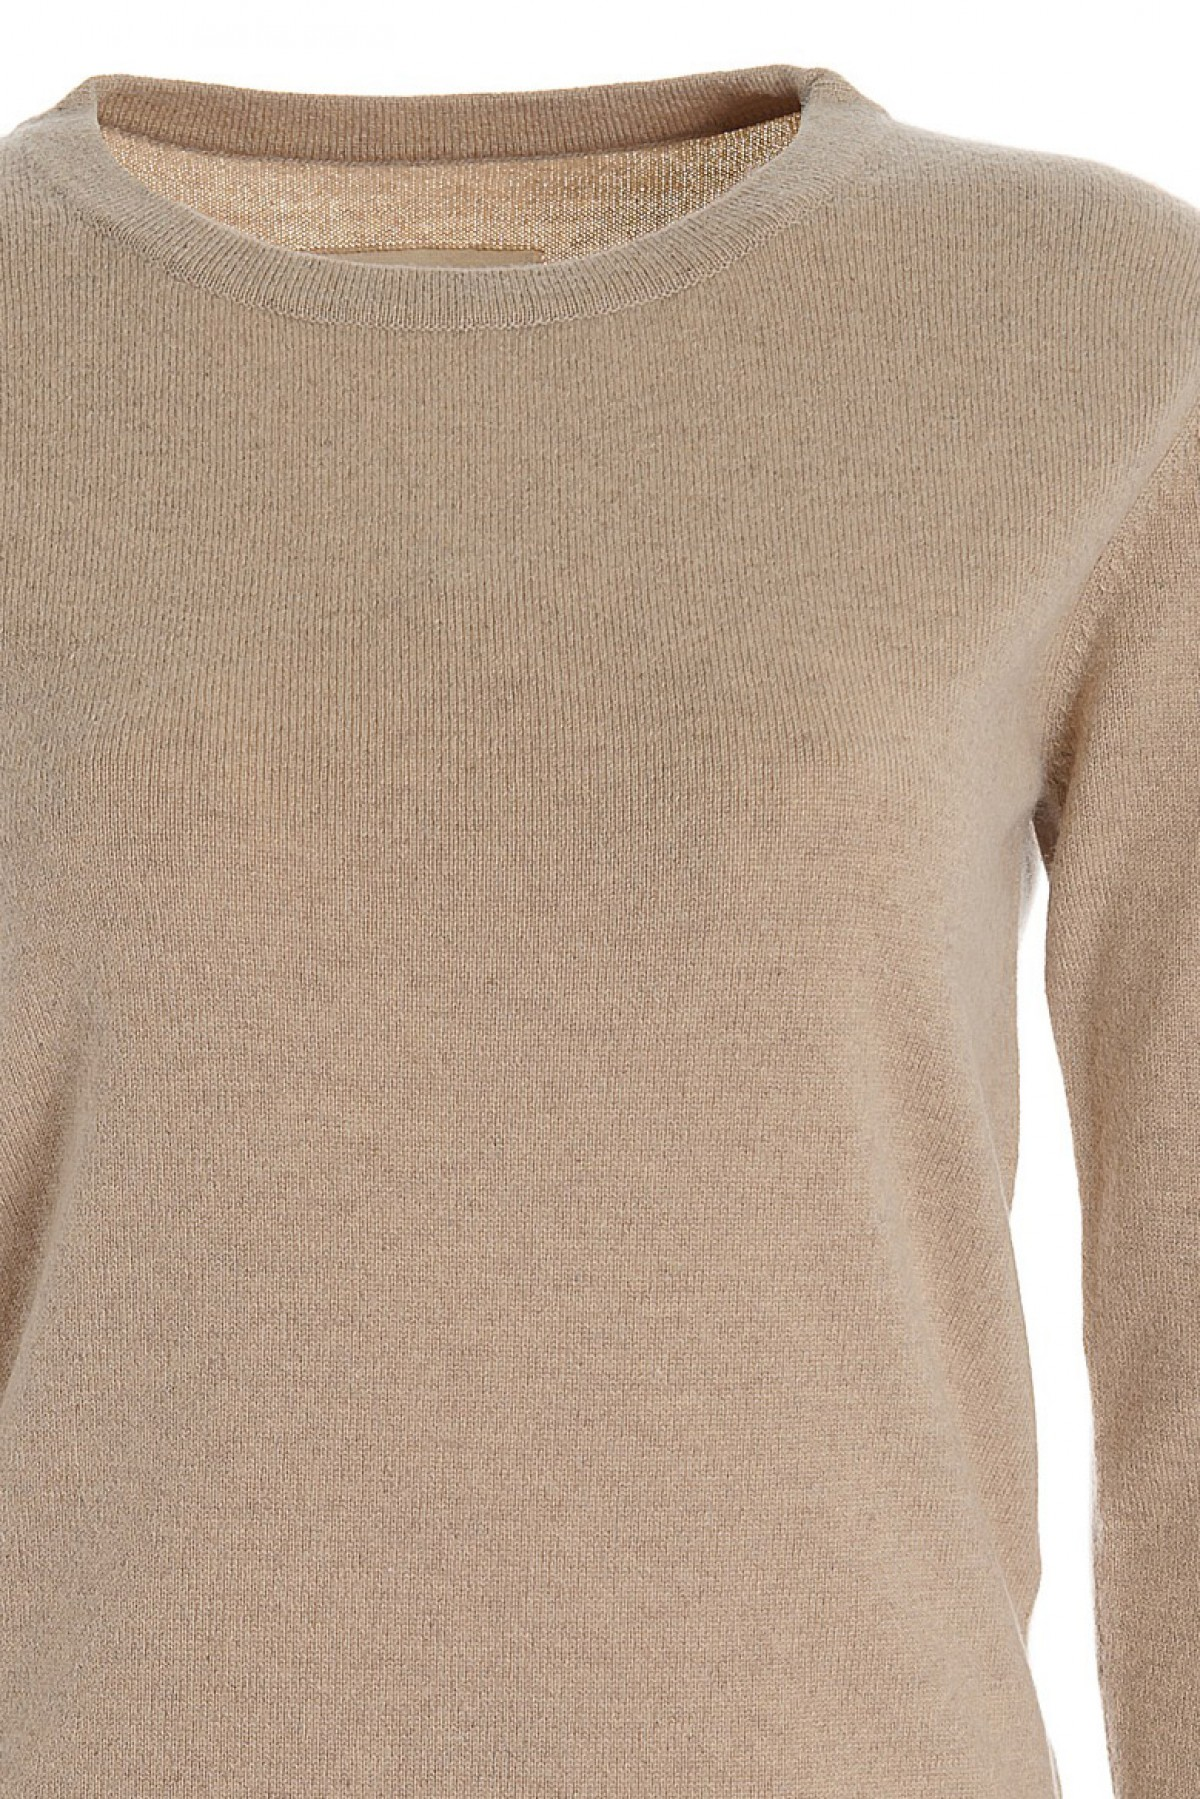 Women's long sleeve cashmere top vicuna